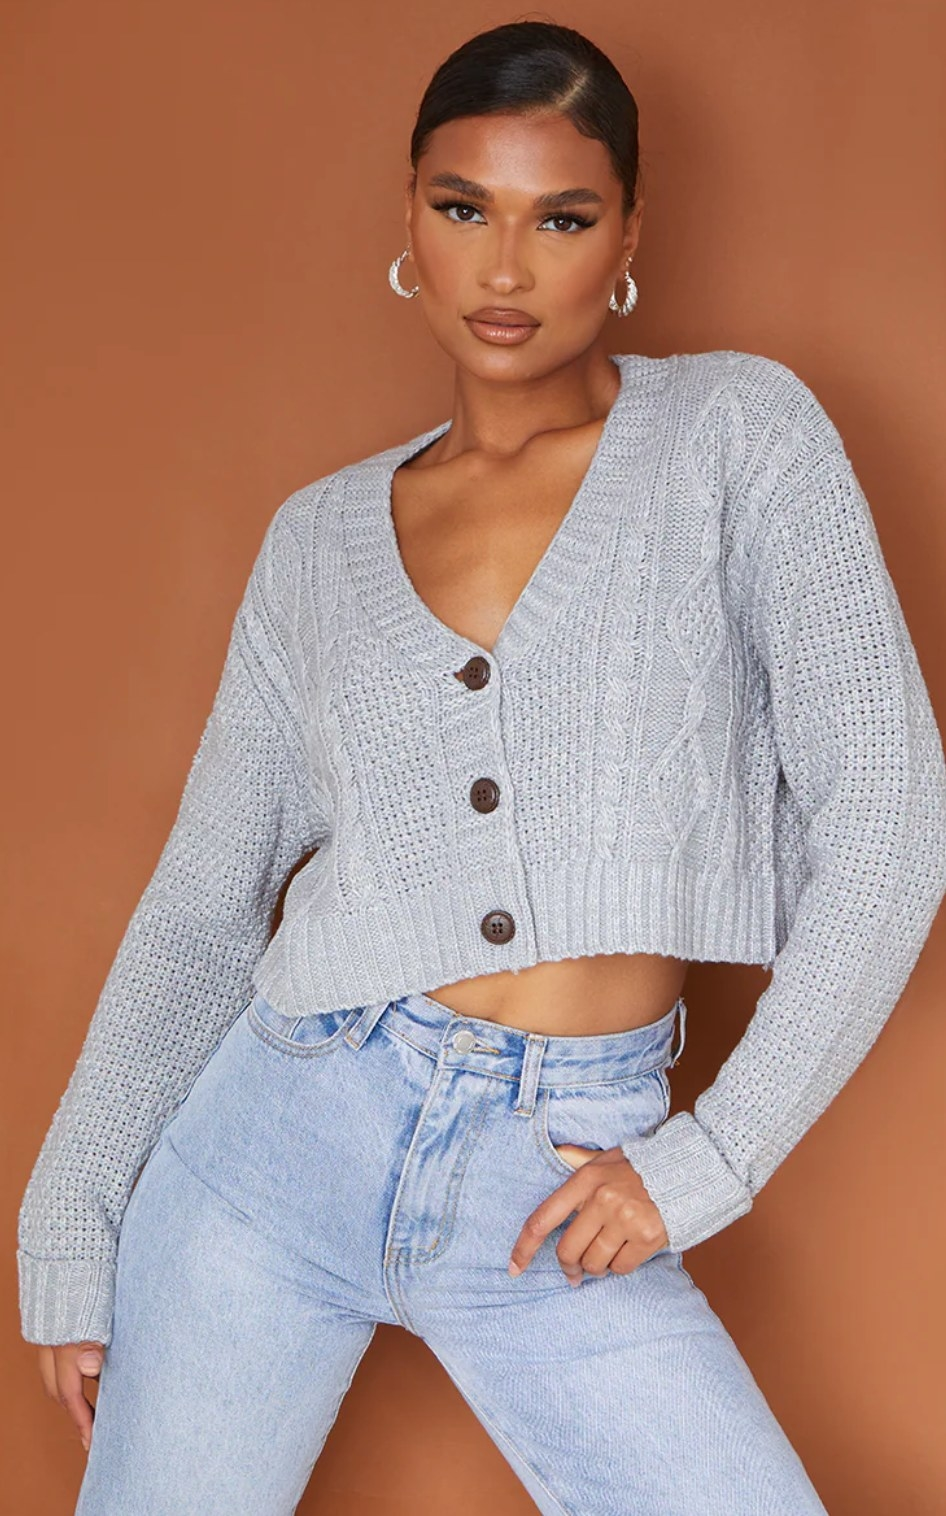 model wearing the gray cropped cardigan with blue jeans